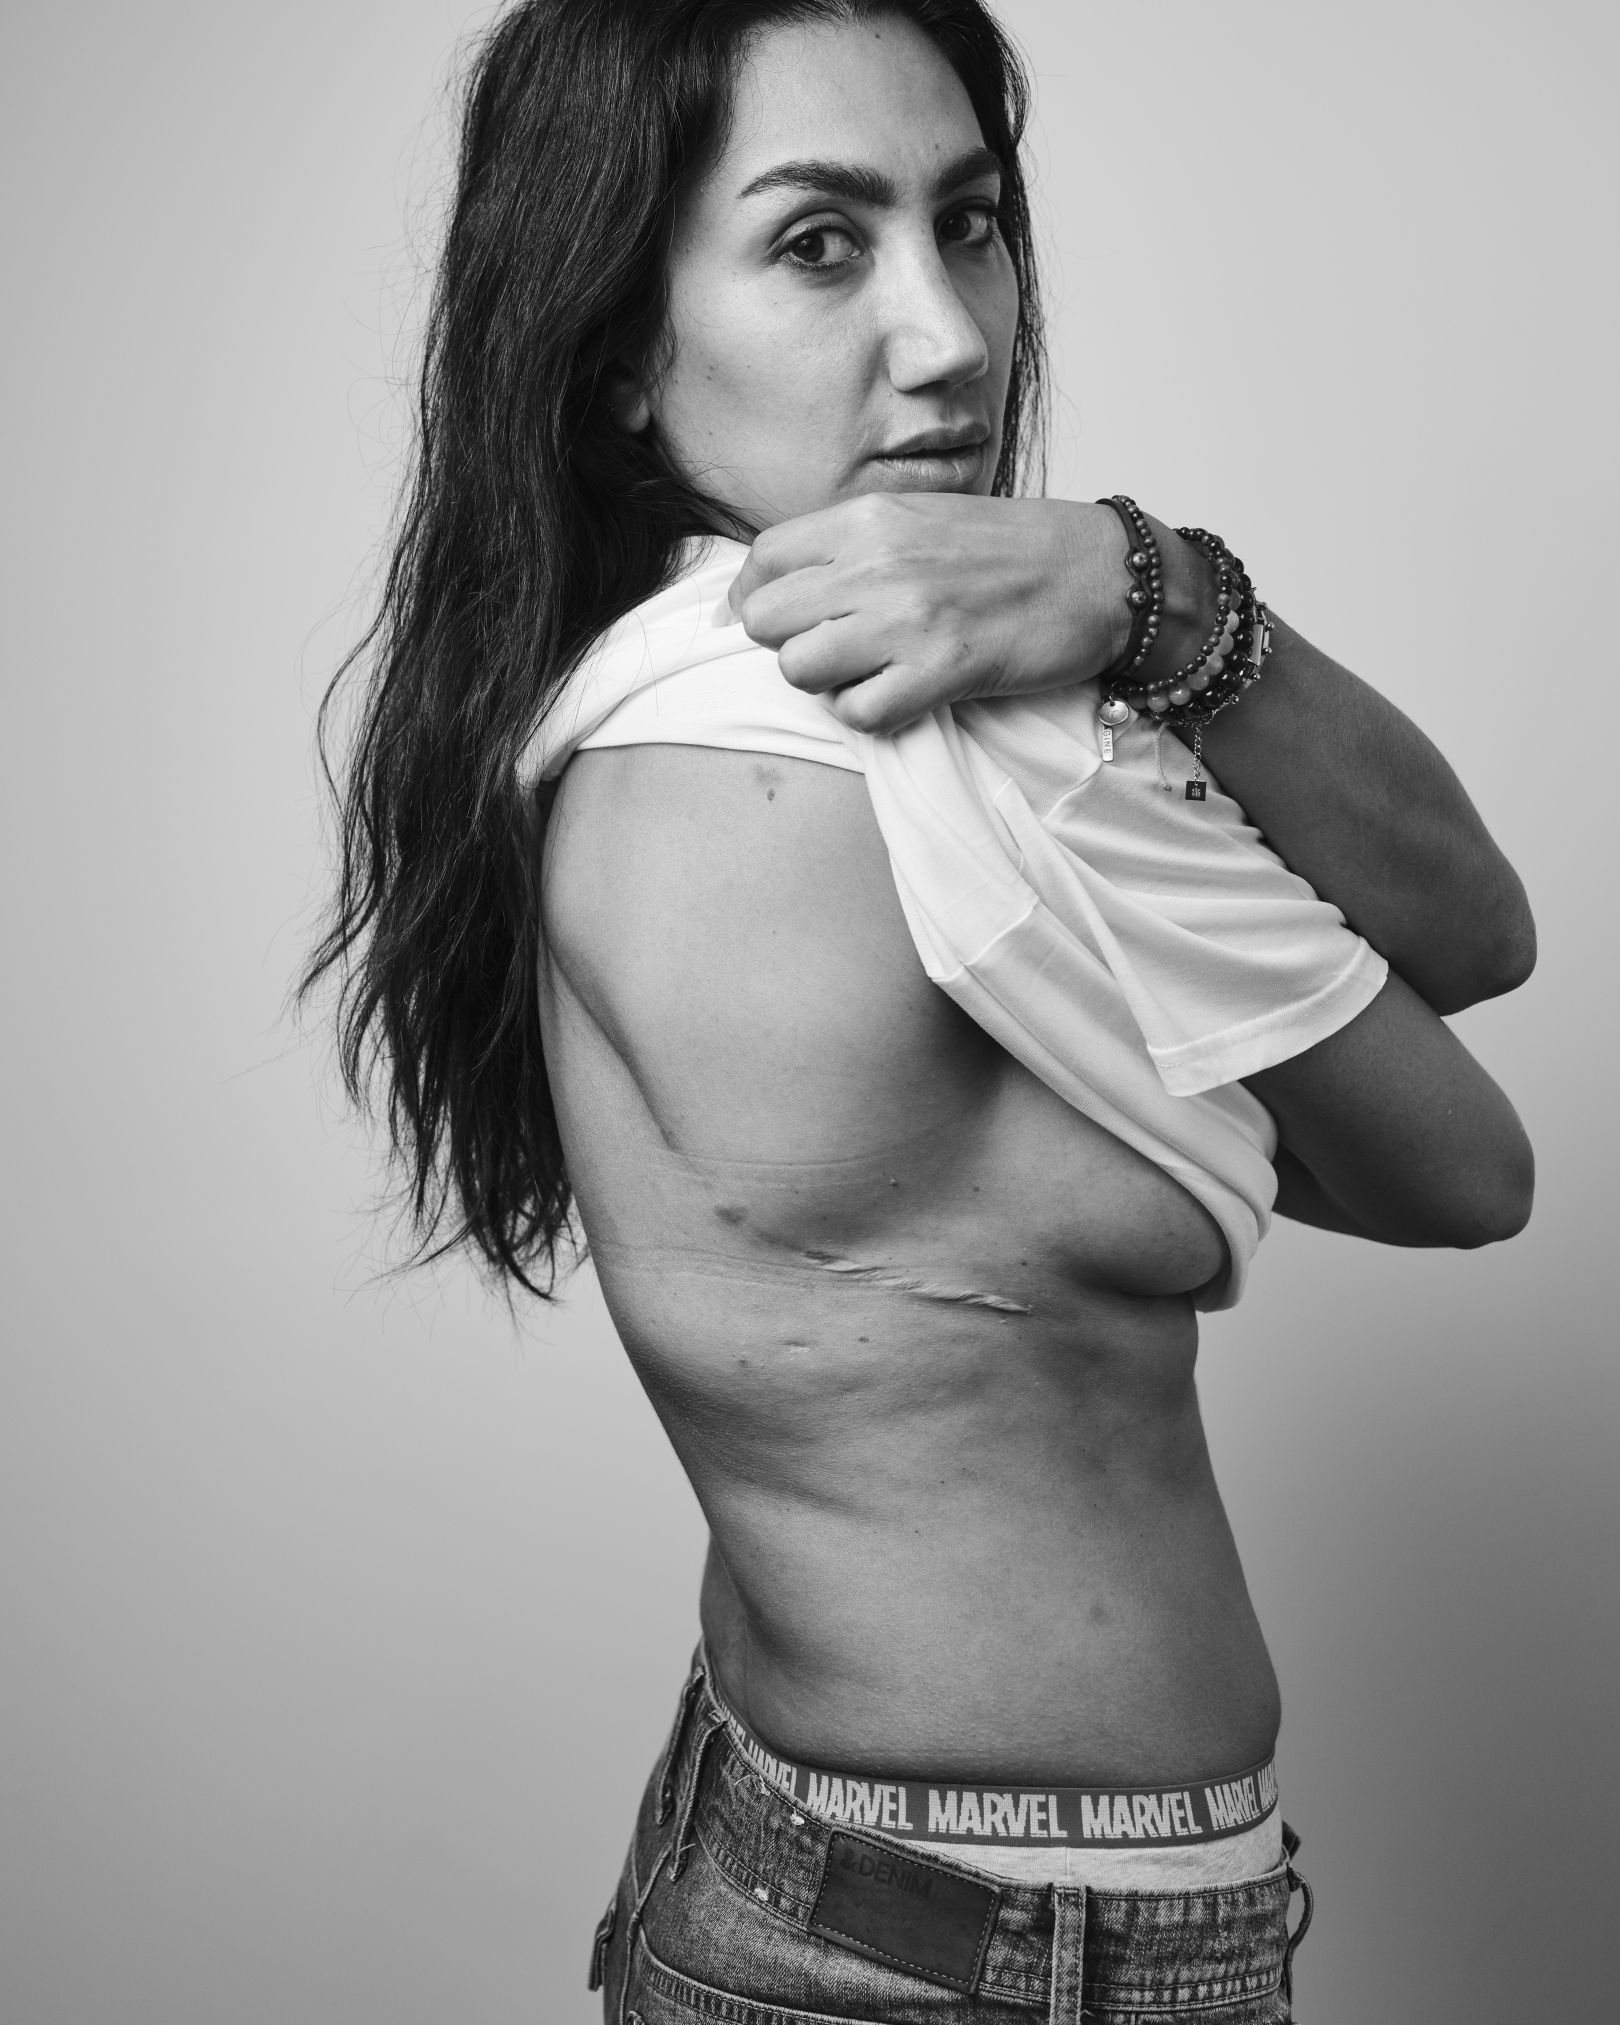 A black and white photograph of a woman standing sideways and holding her shirt up to reveal a scar on her ribs.